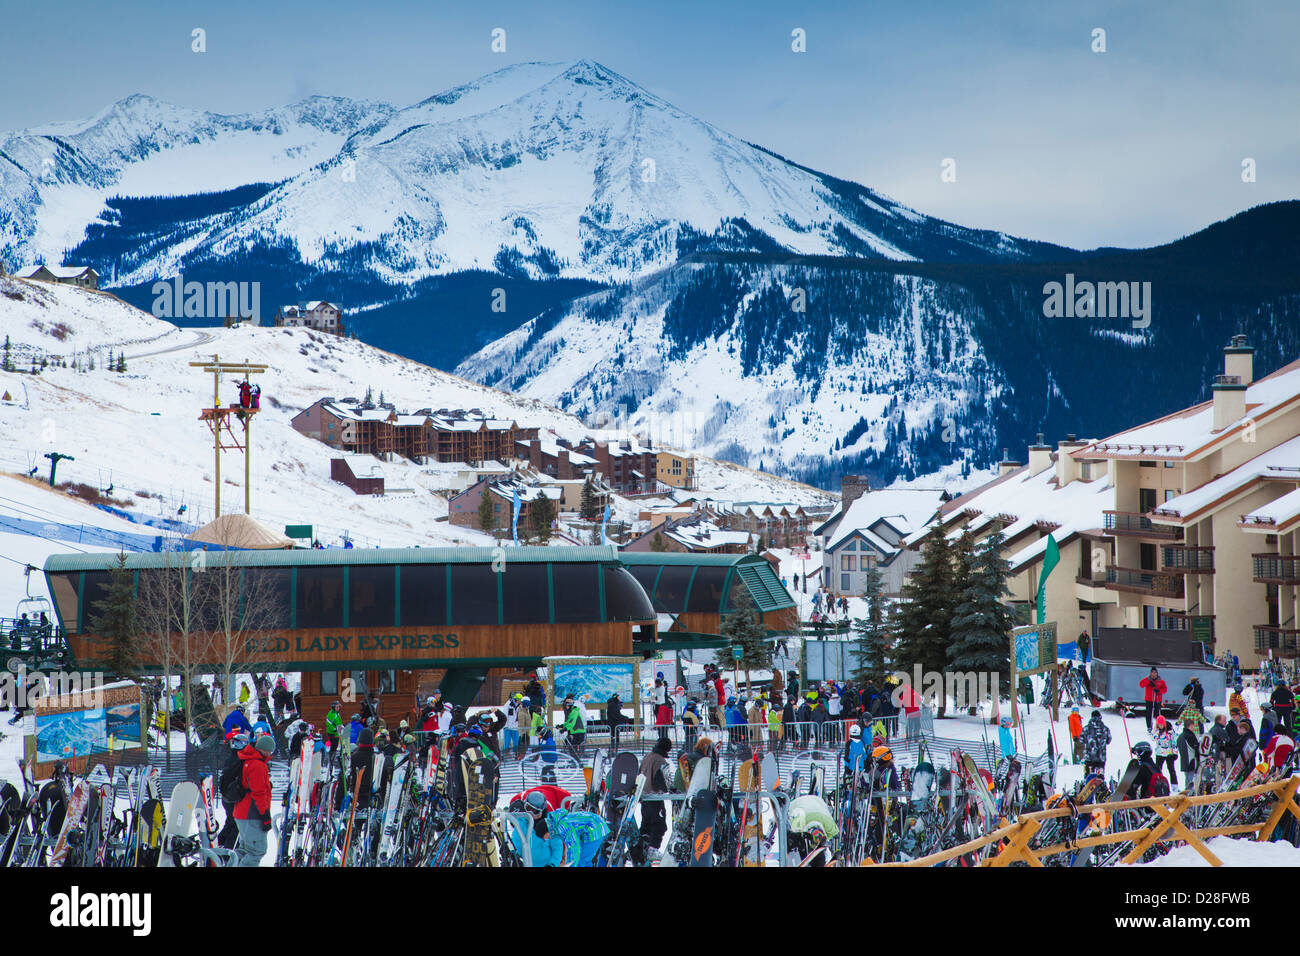 USA, Colorado, Crested Butte, Mount Crested Butte Ski Village, elevated view Stock Photo